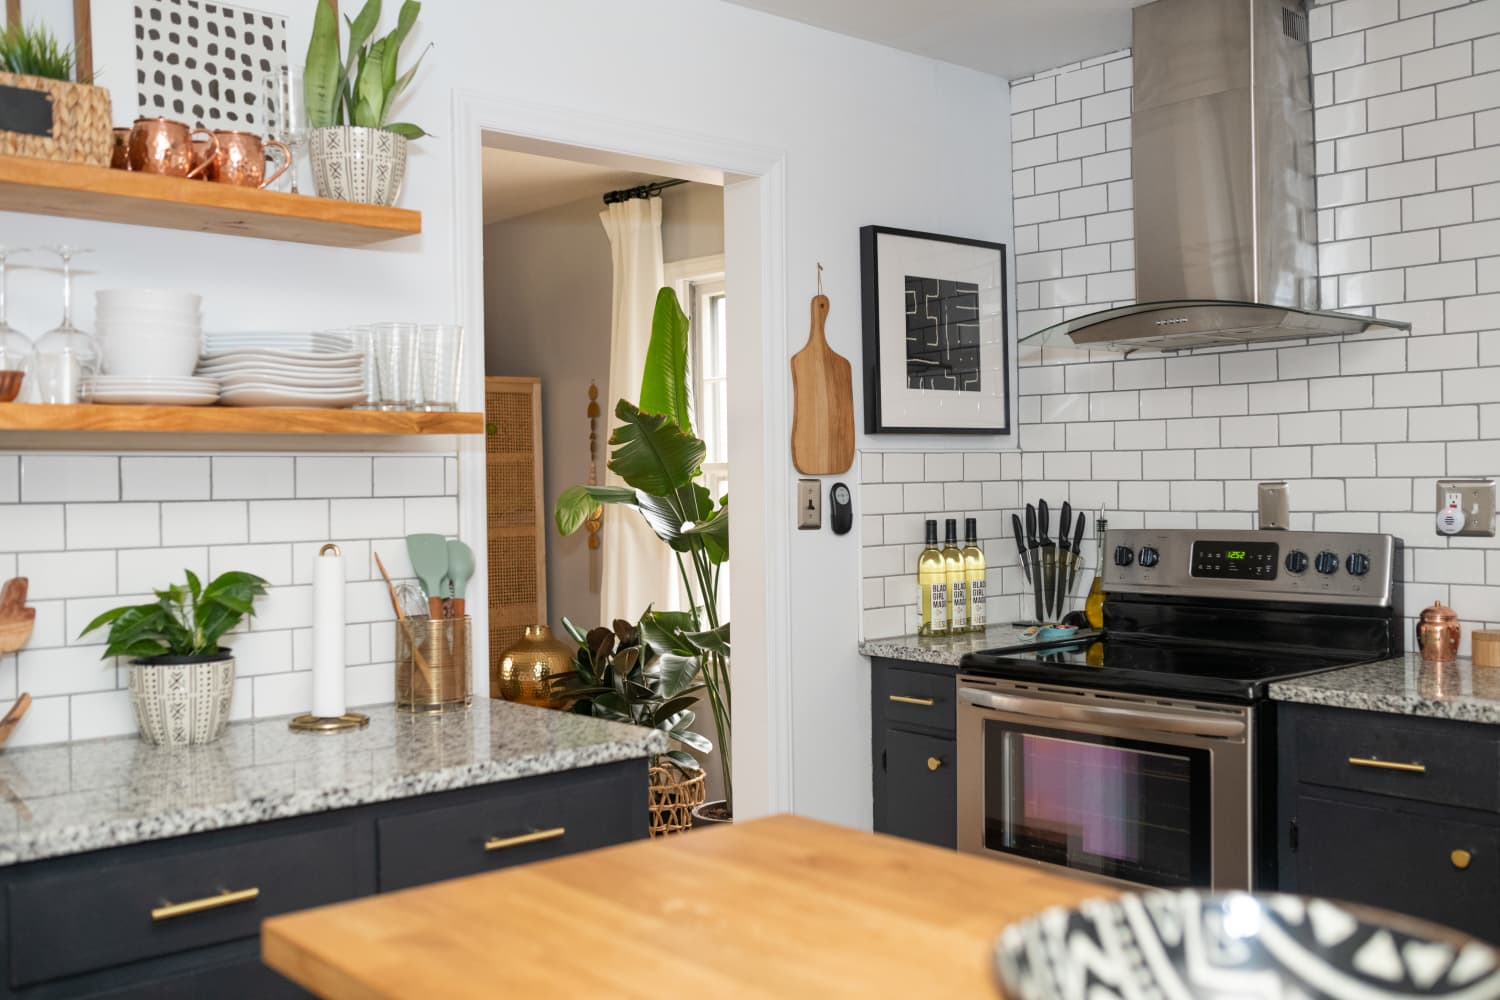 The Natural Cleaning Habit That's Ruining Your Granite Countertops